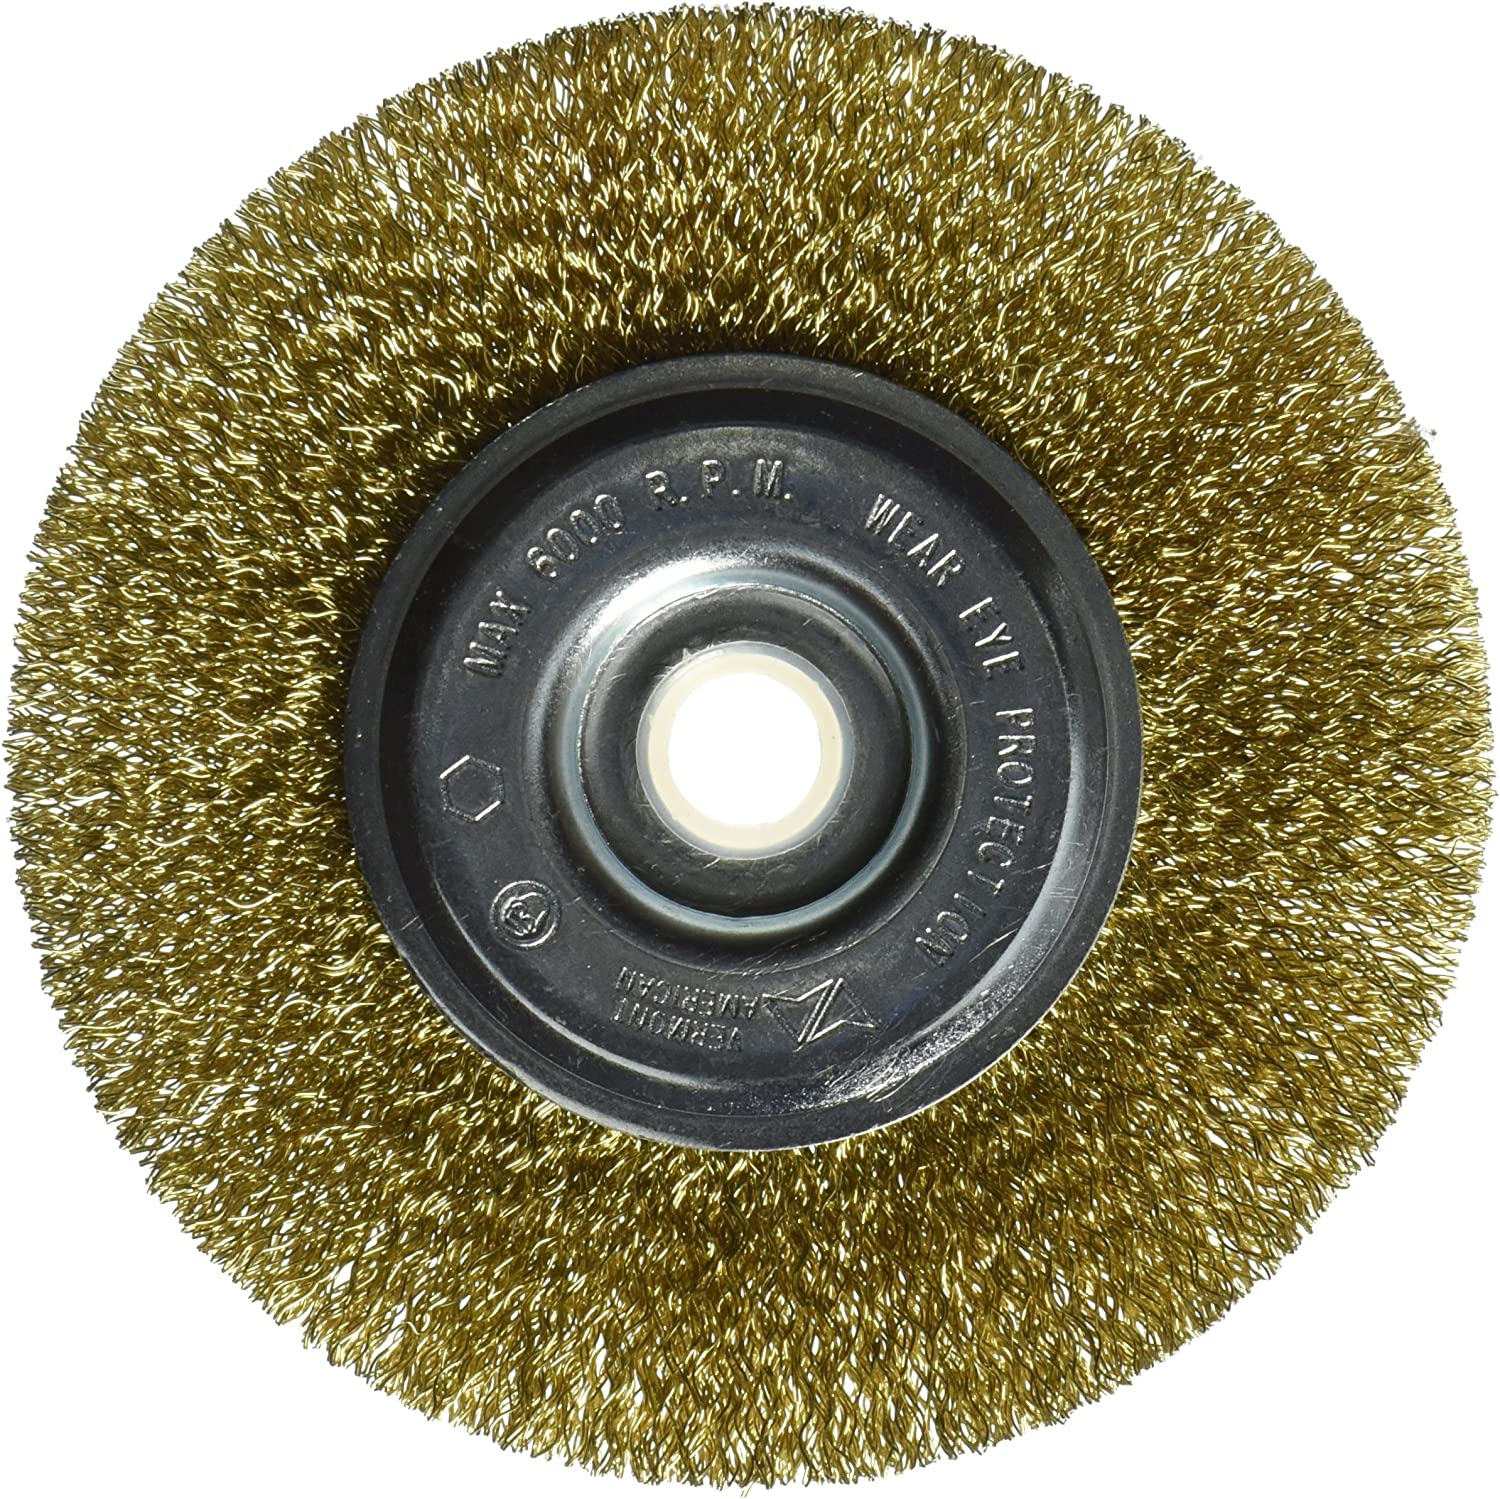 Vermont American 16799 5-Inch Course Brass Wire Wheel Brush with 1//4-Inch Hex Shank for Drill